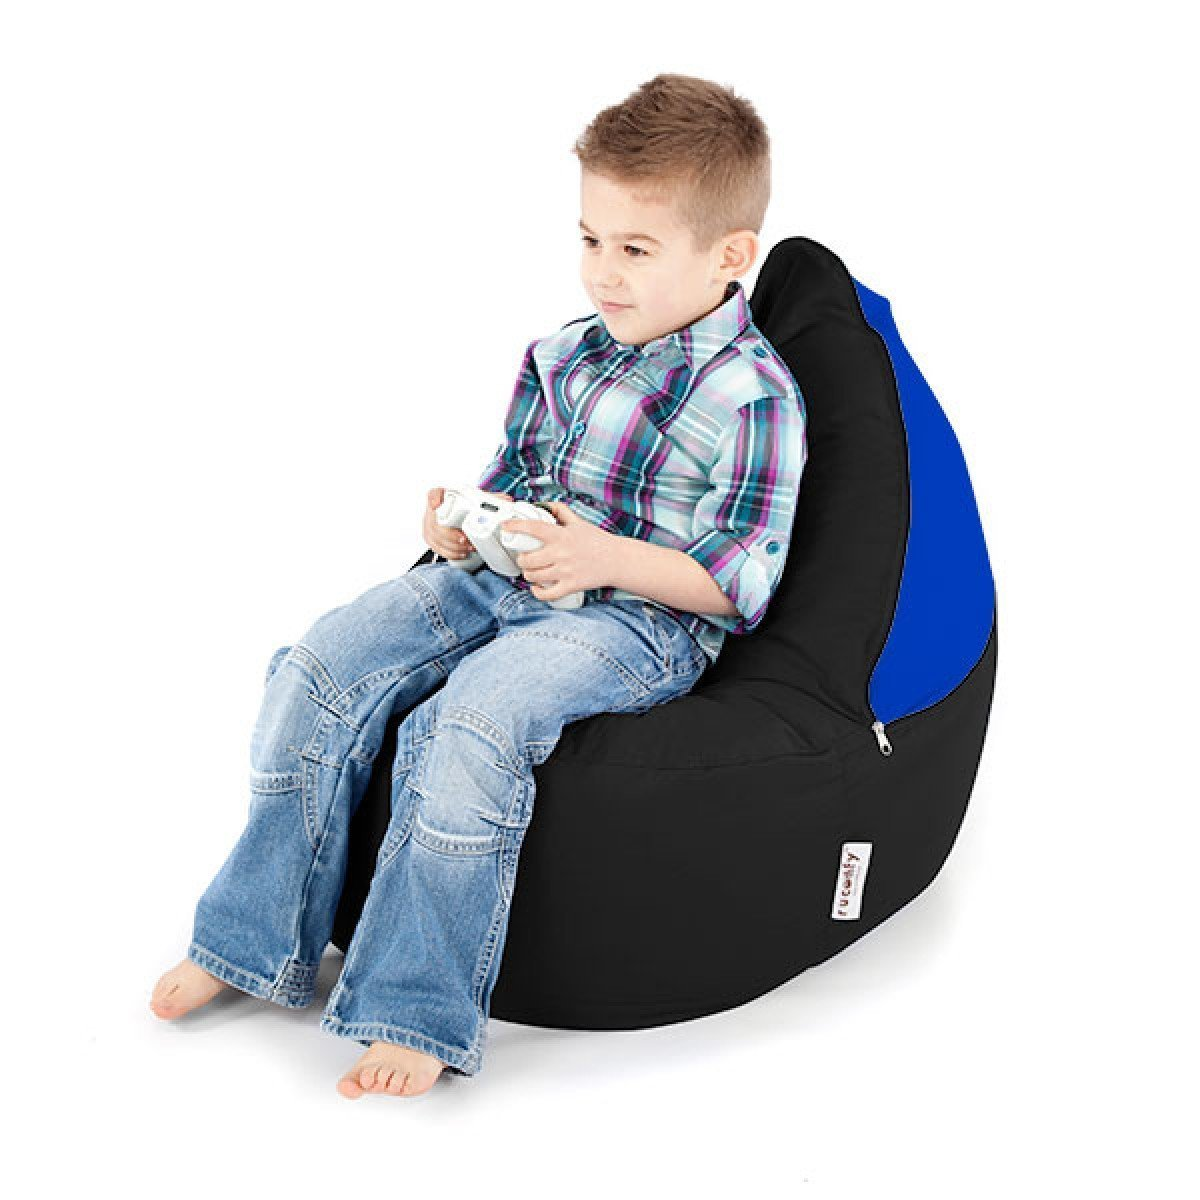 gaming chairs for kids home furniture design. Black Bedroom Furniture Sets. Home Design Ideas